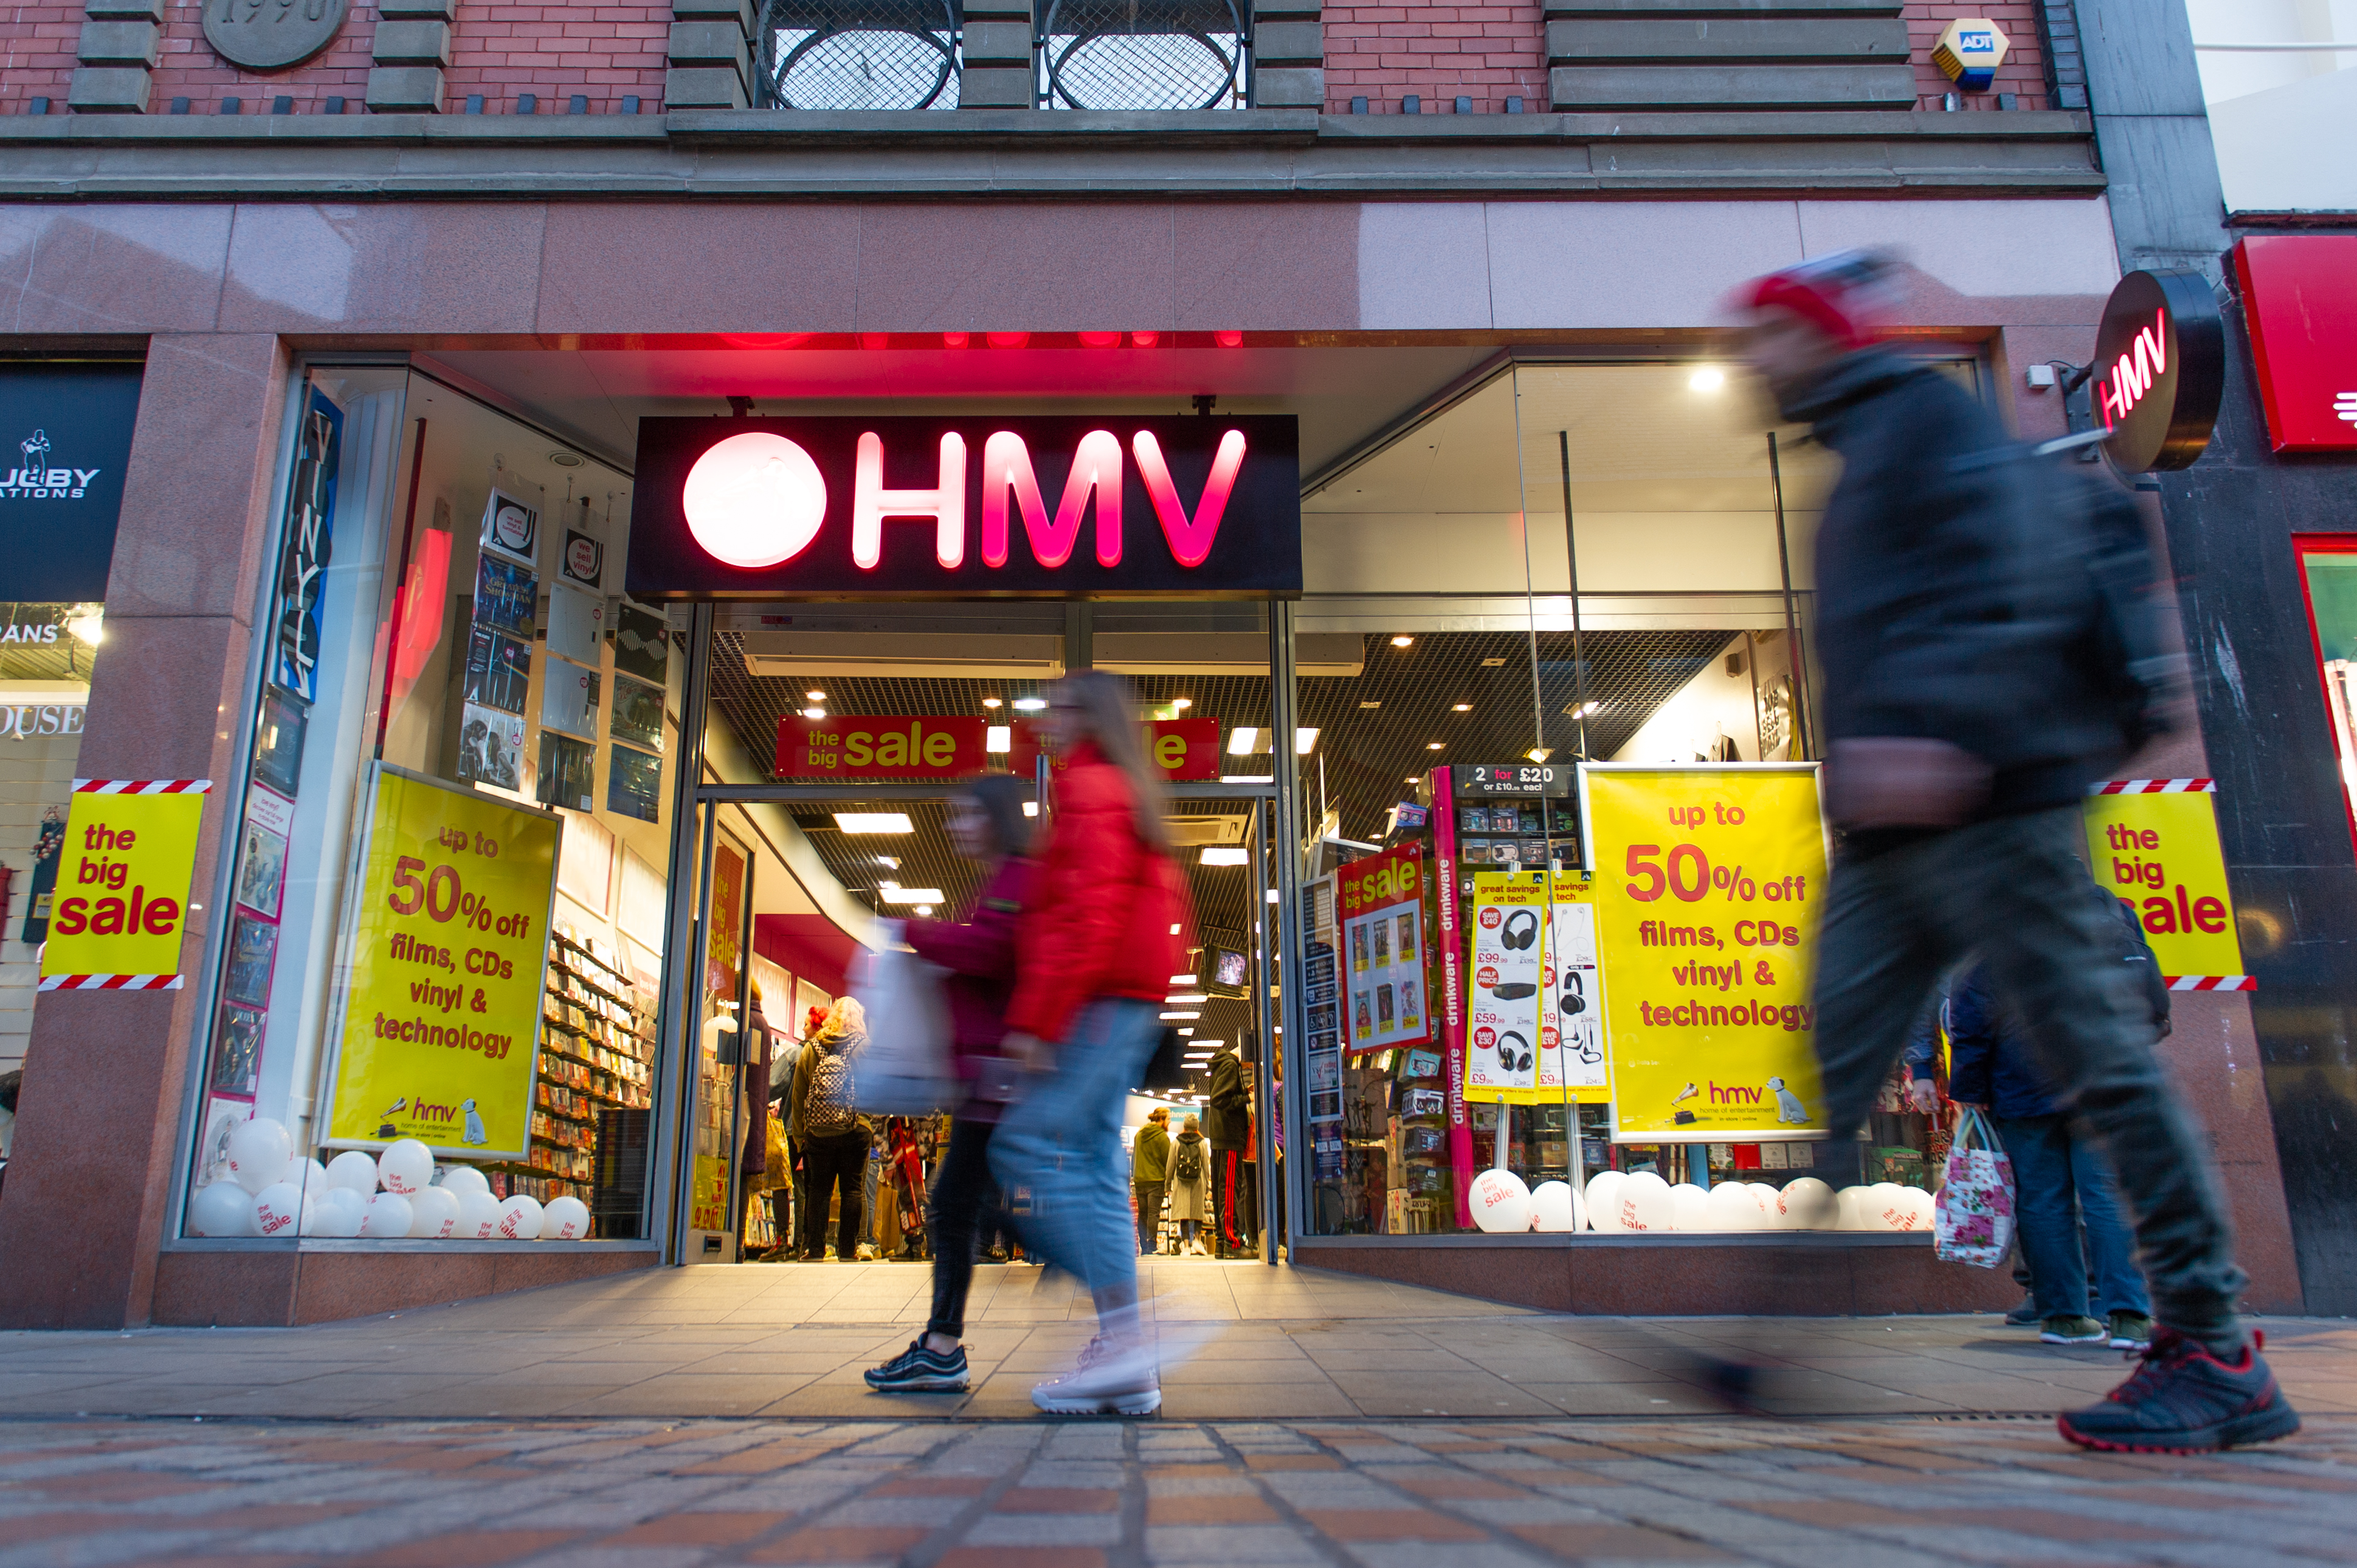 HMV in Dundee (Kim Cessford / DCT Media)